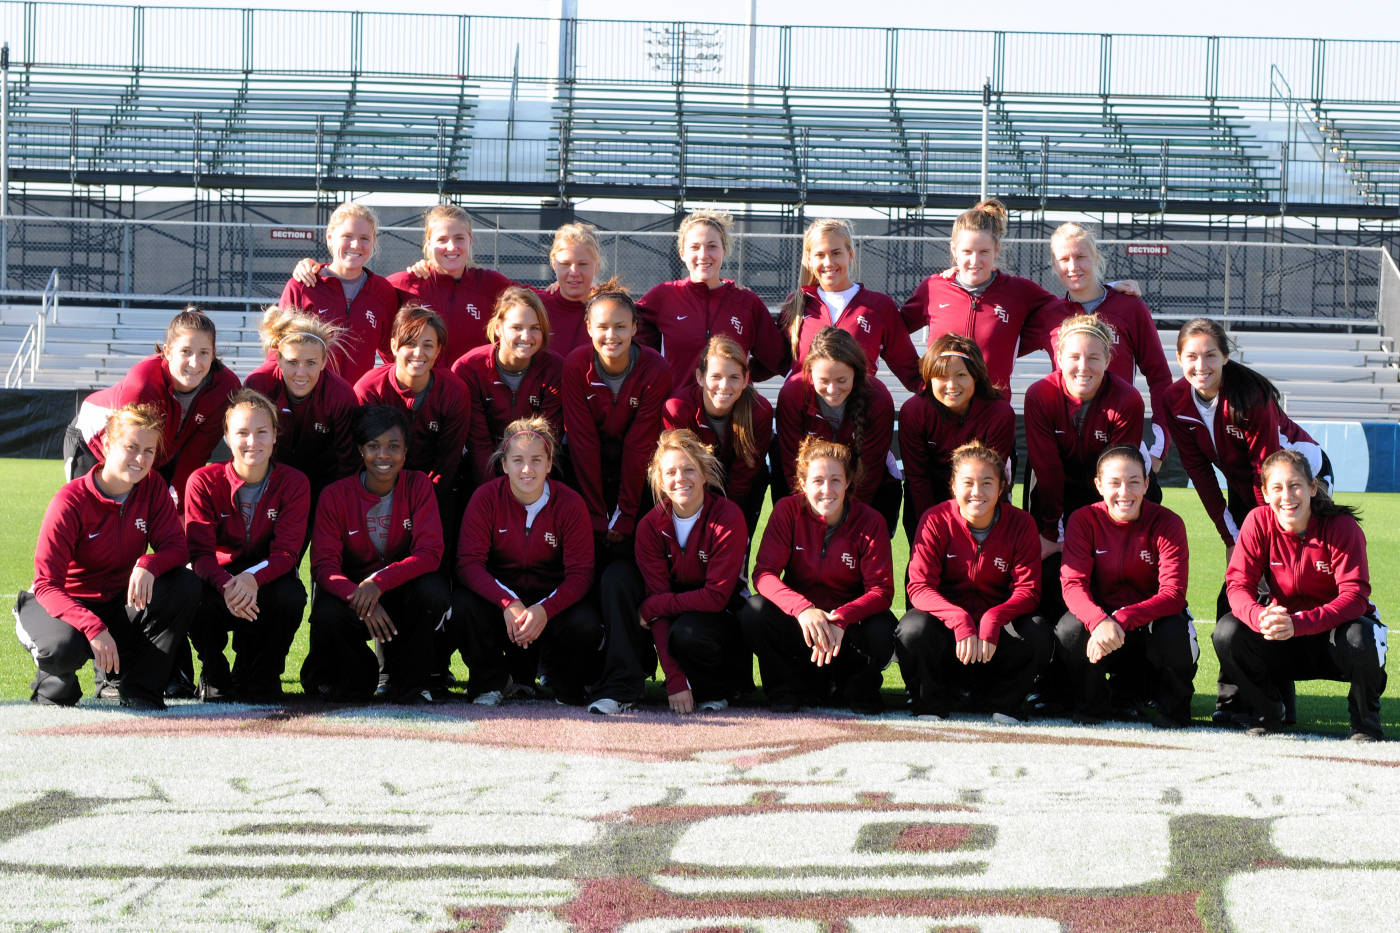 2007 College Cup: The FSU squad posing at midfield inside the Aggie Soccer Complex on the campus of Texas A&M